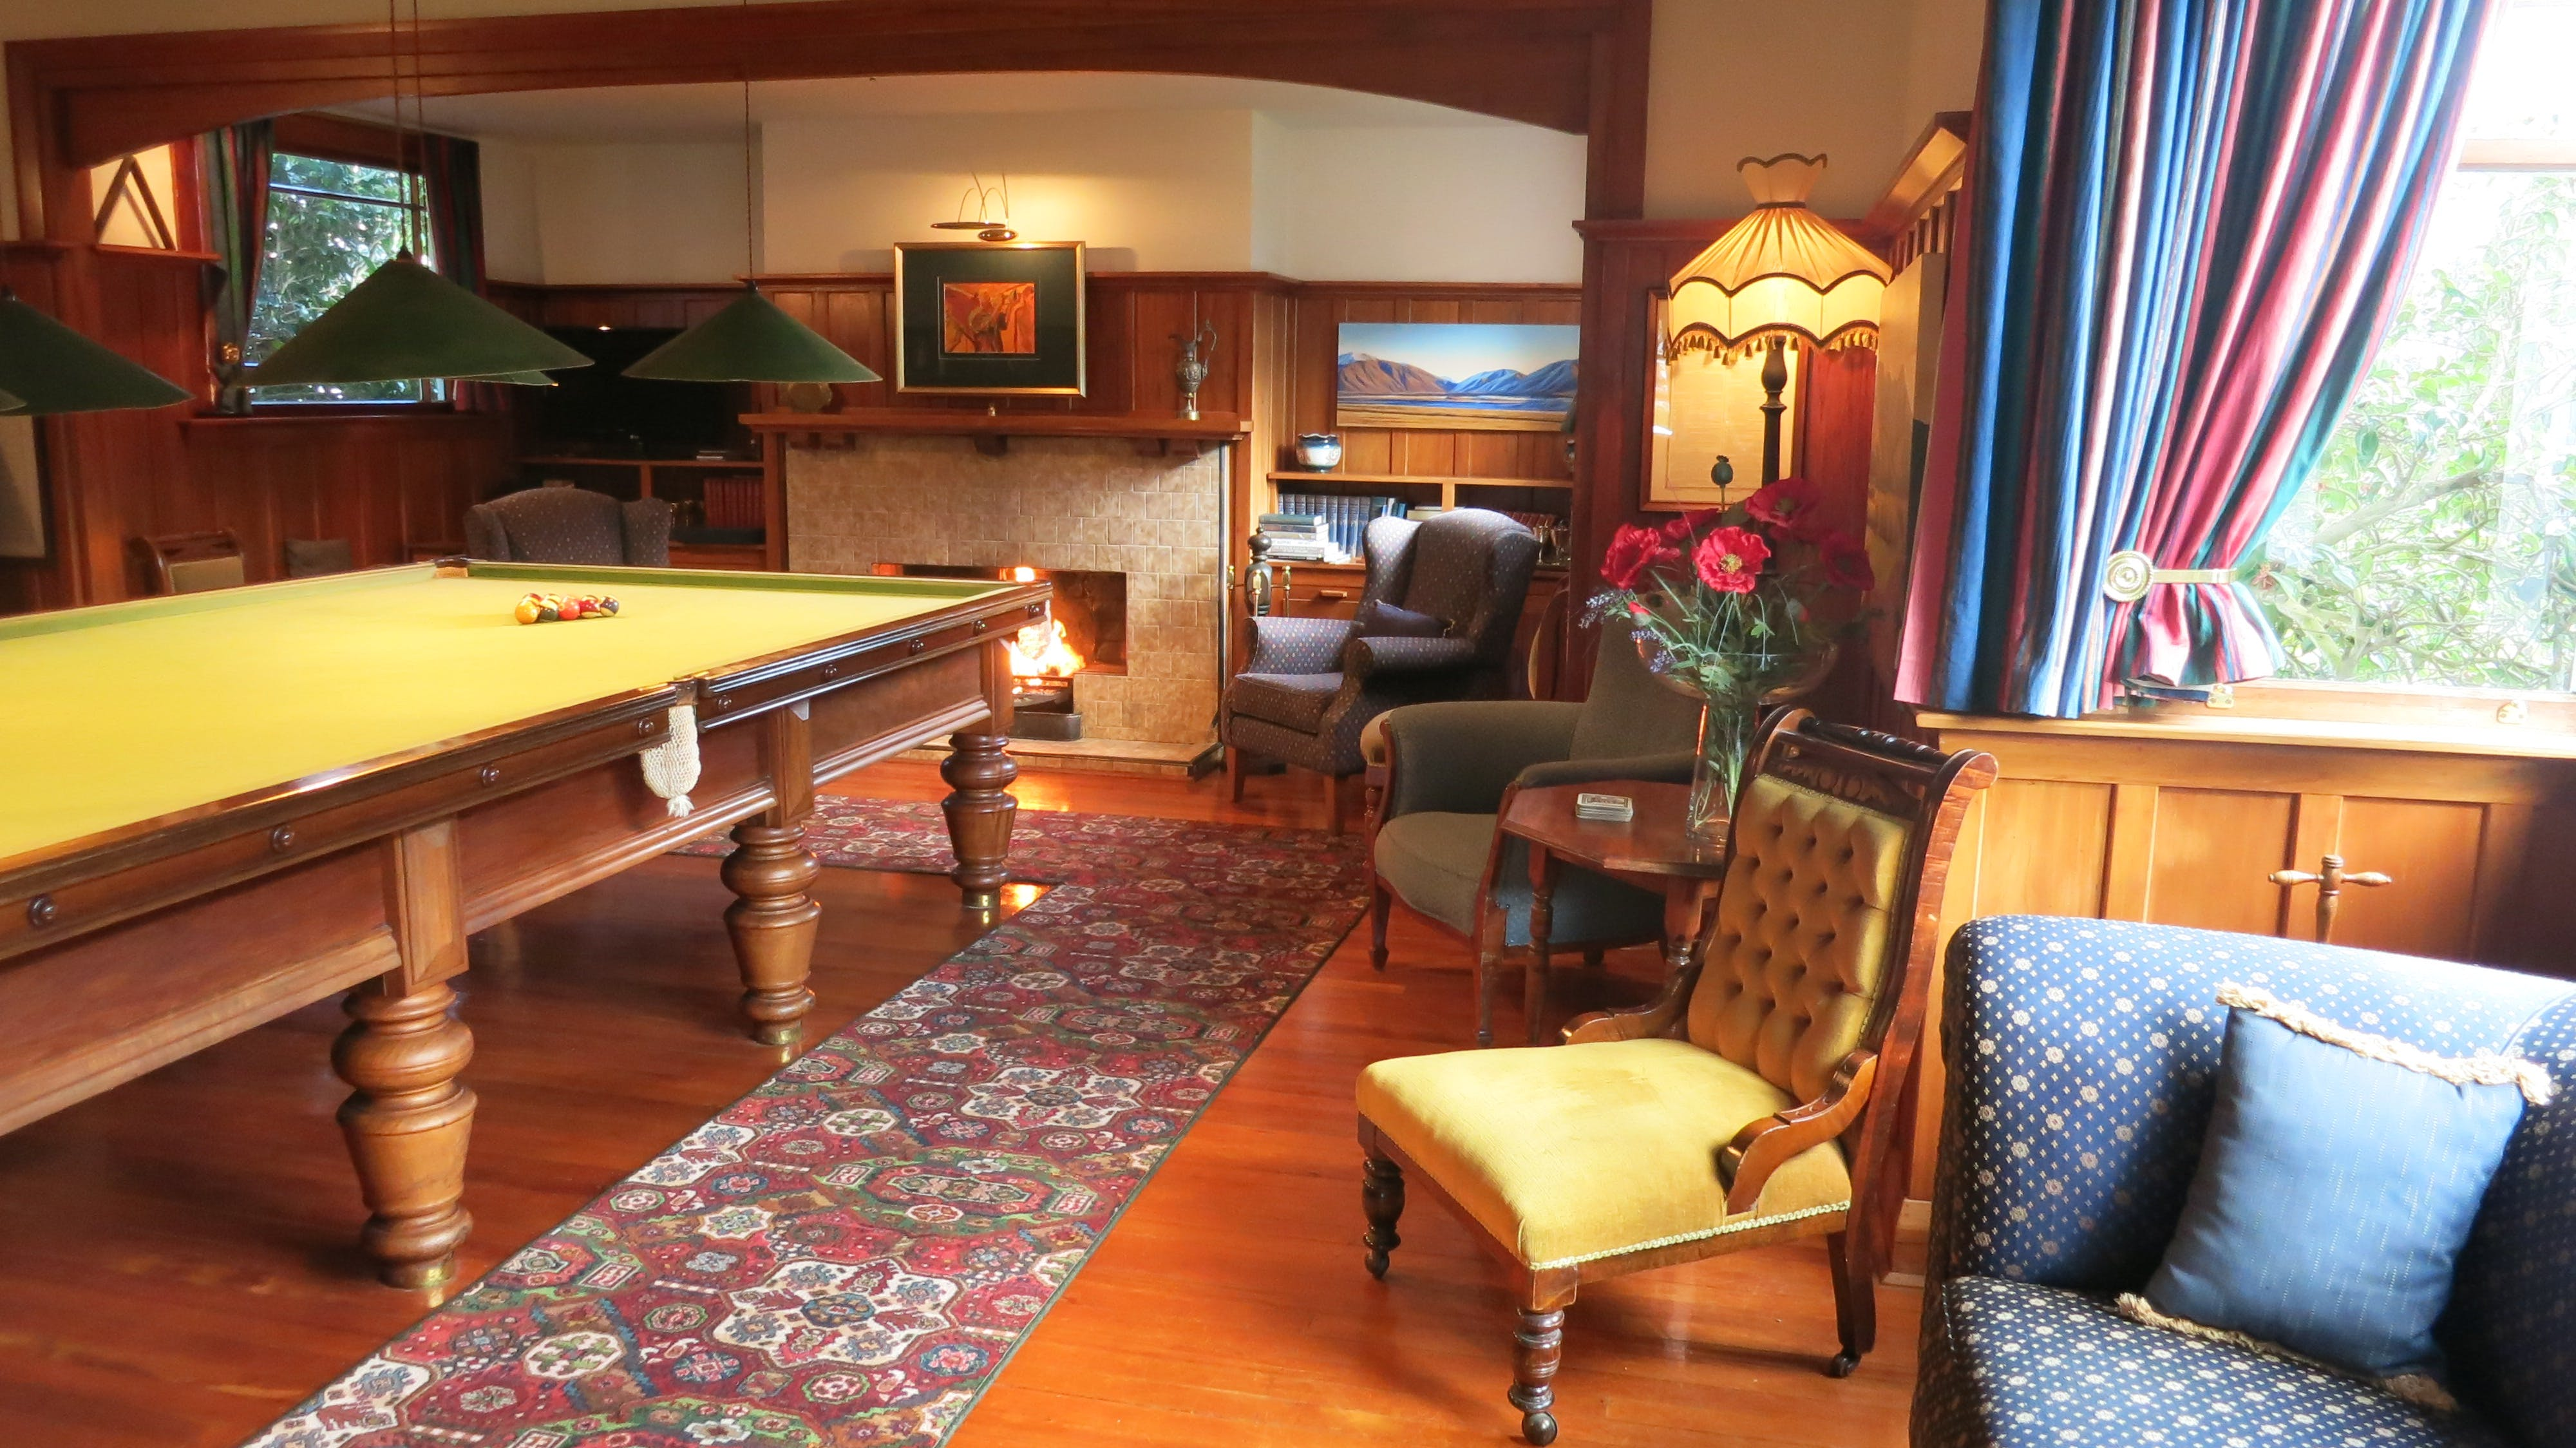 Relax in the billiard room